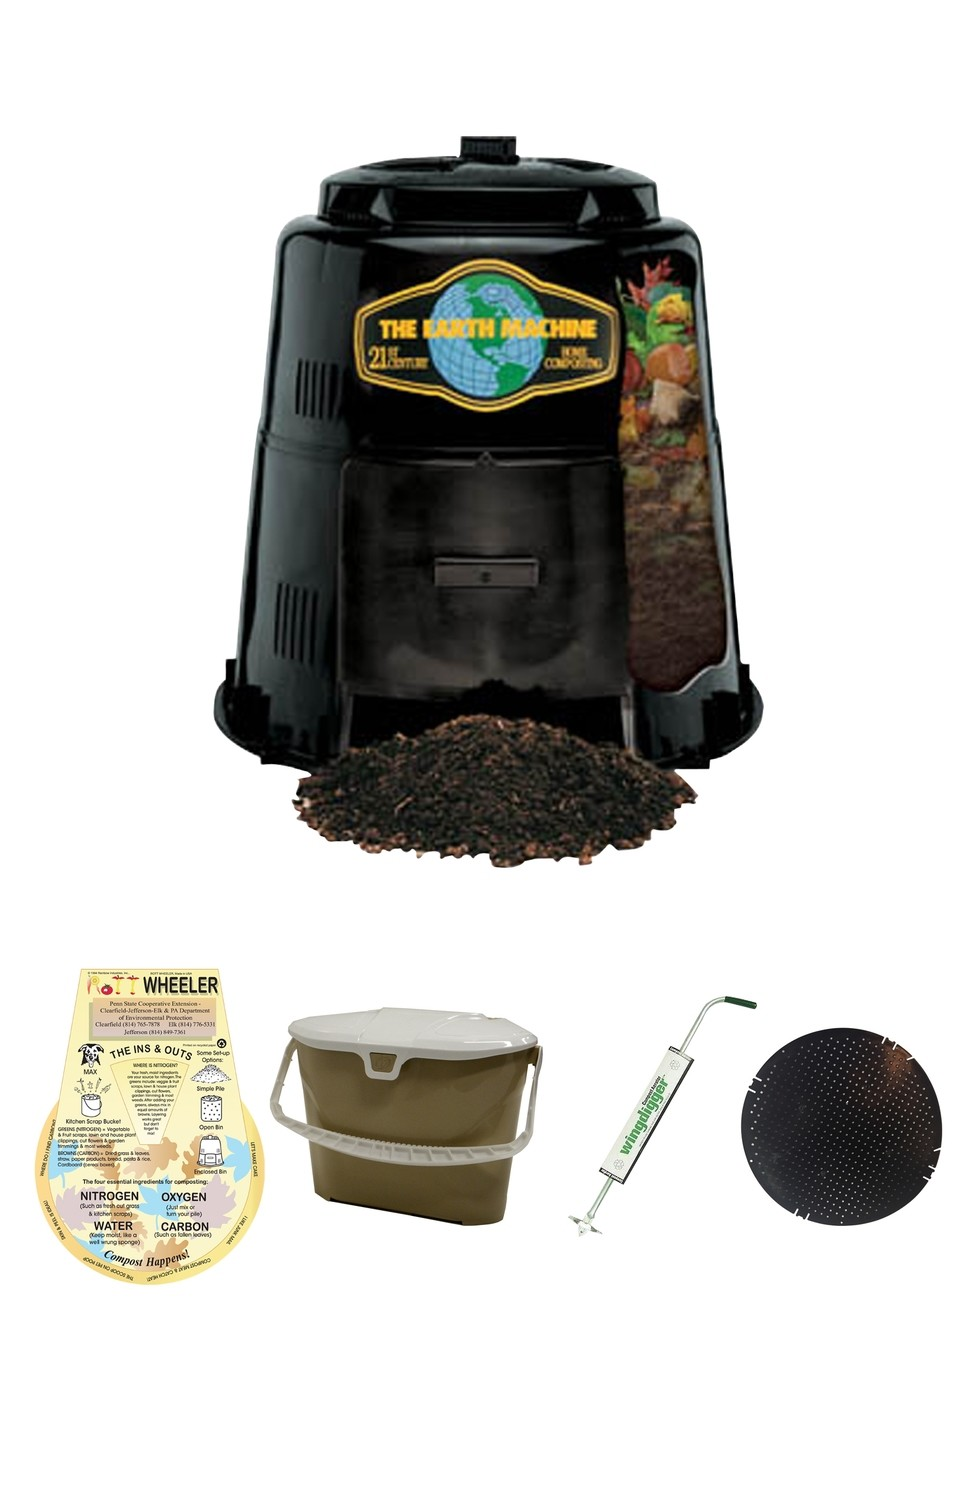 KIT 4: Earth Machine - BEST VALUE - Includes the Rottwheeler, Kitchen Collector, Wingdigger & Rodent Screen/Base.